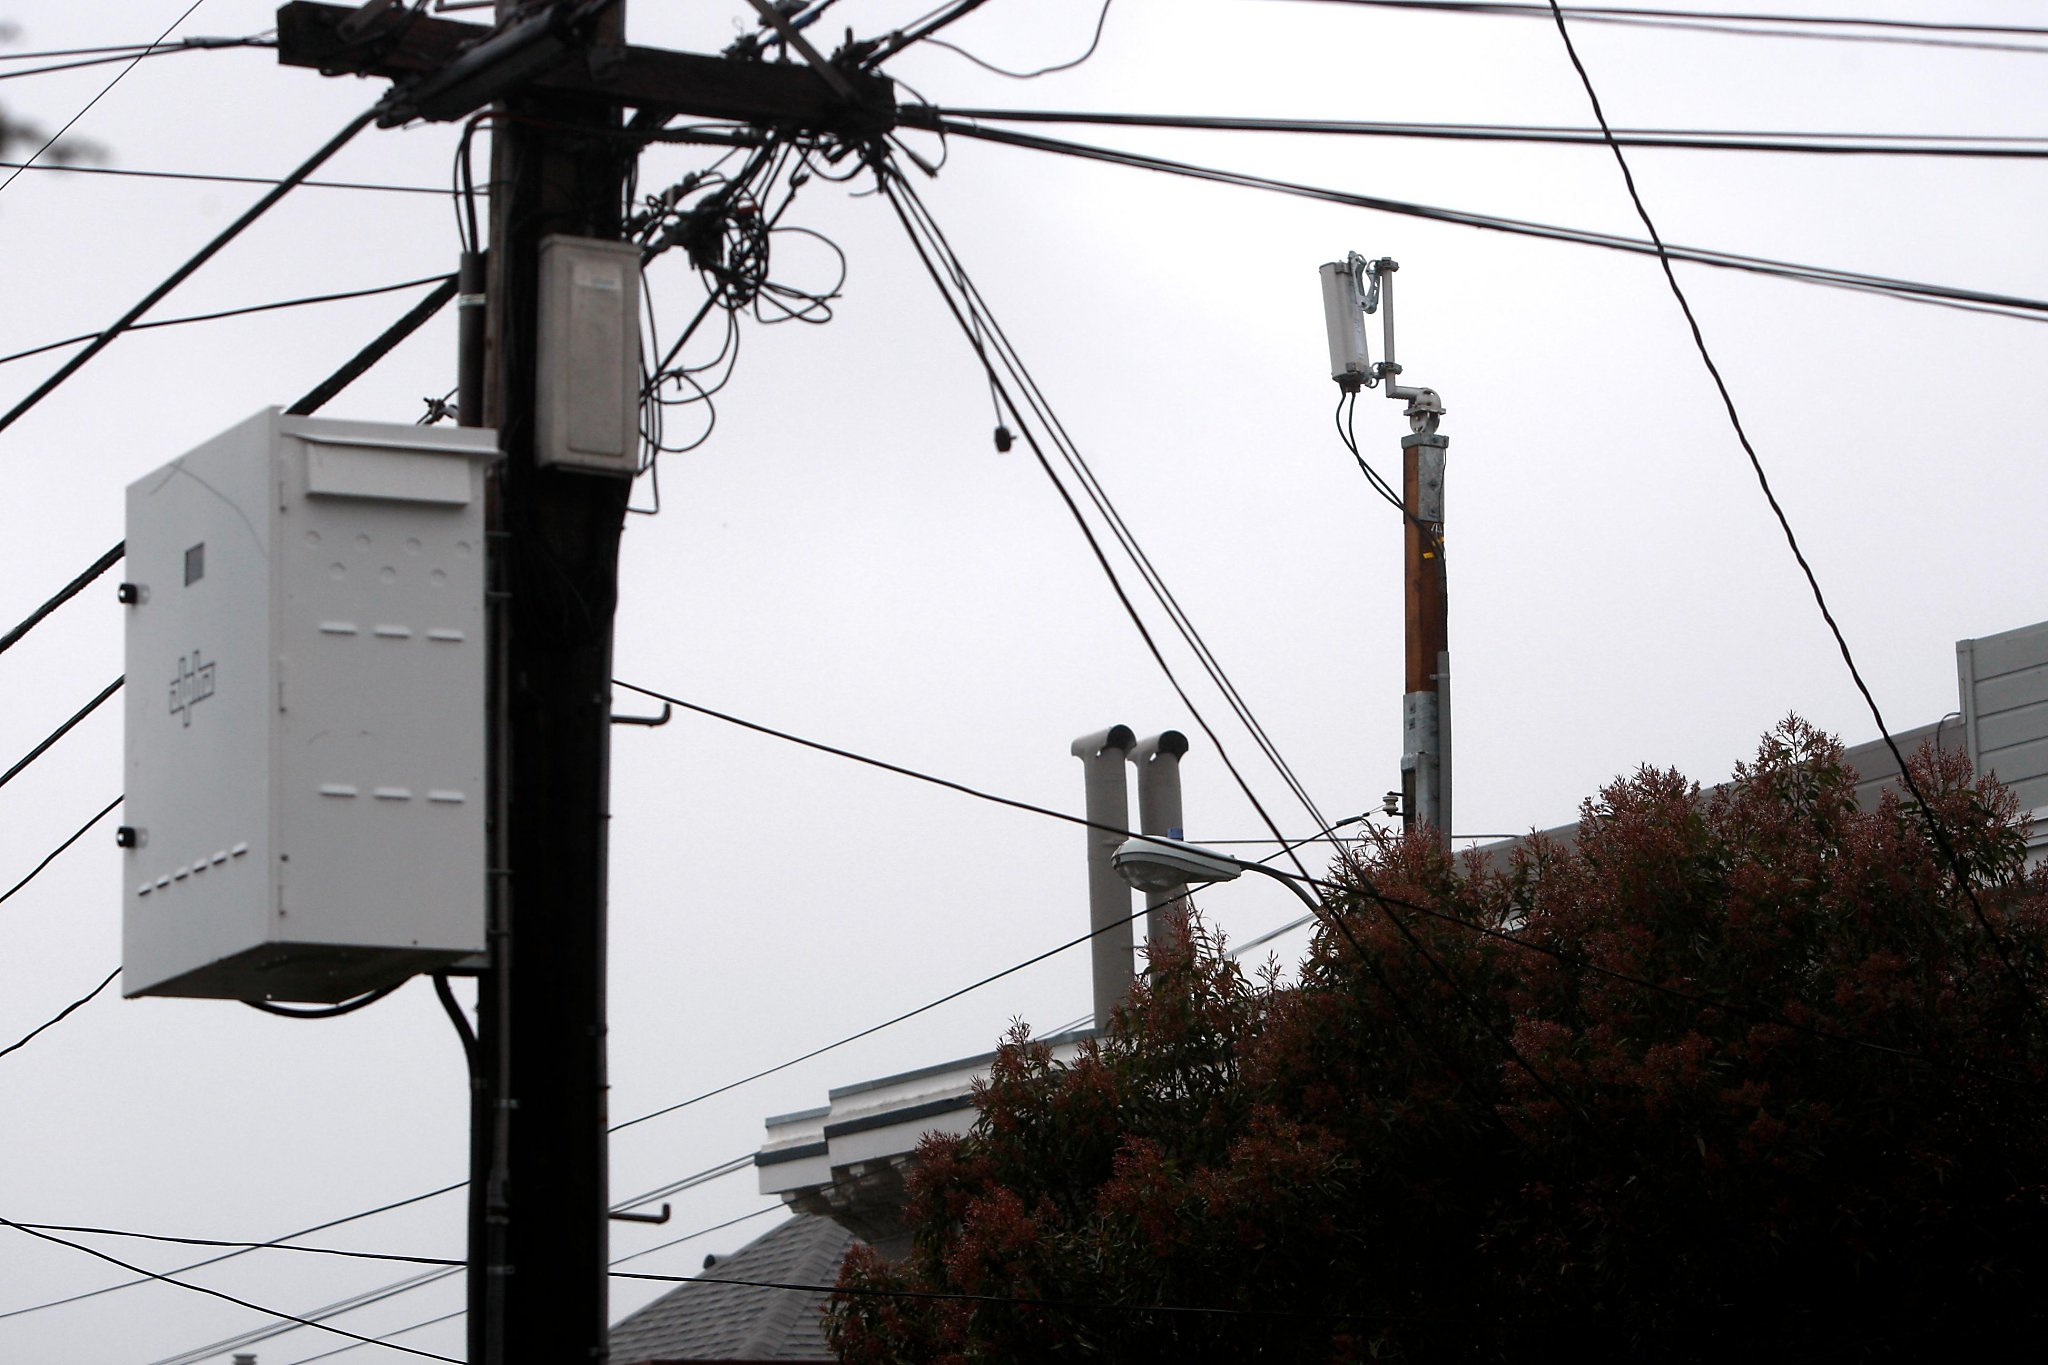 SF can keep views pretty by limiting antennas, court says - SFGate